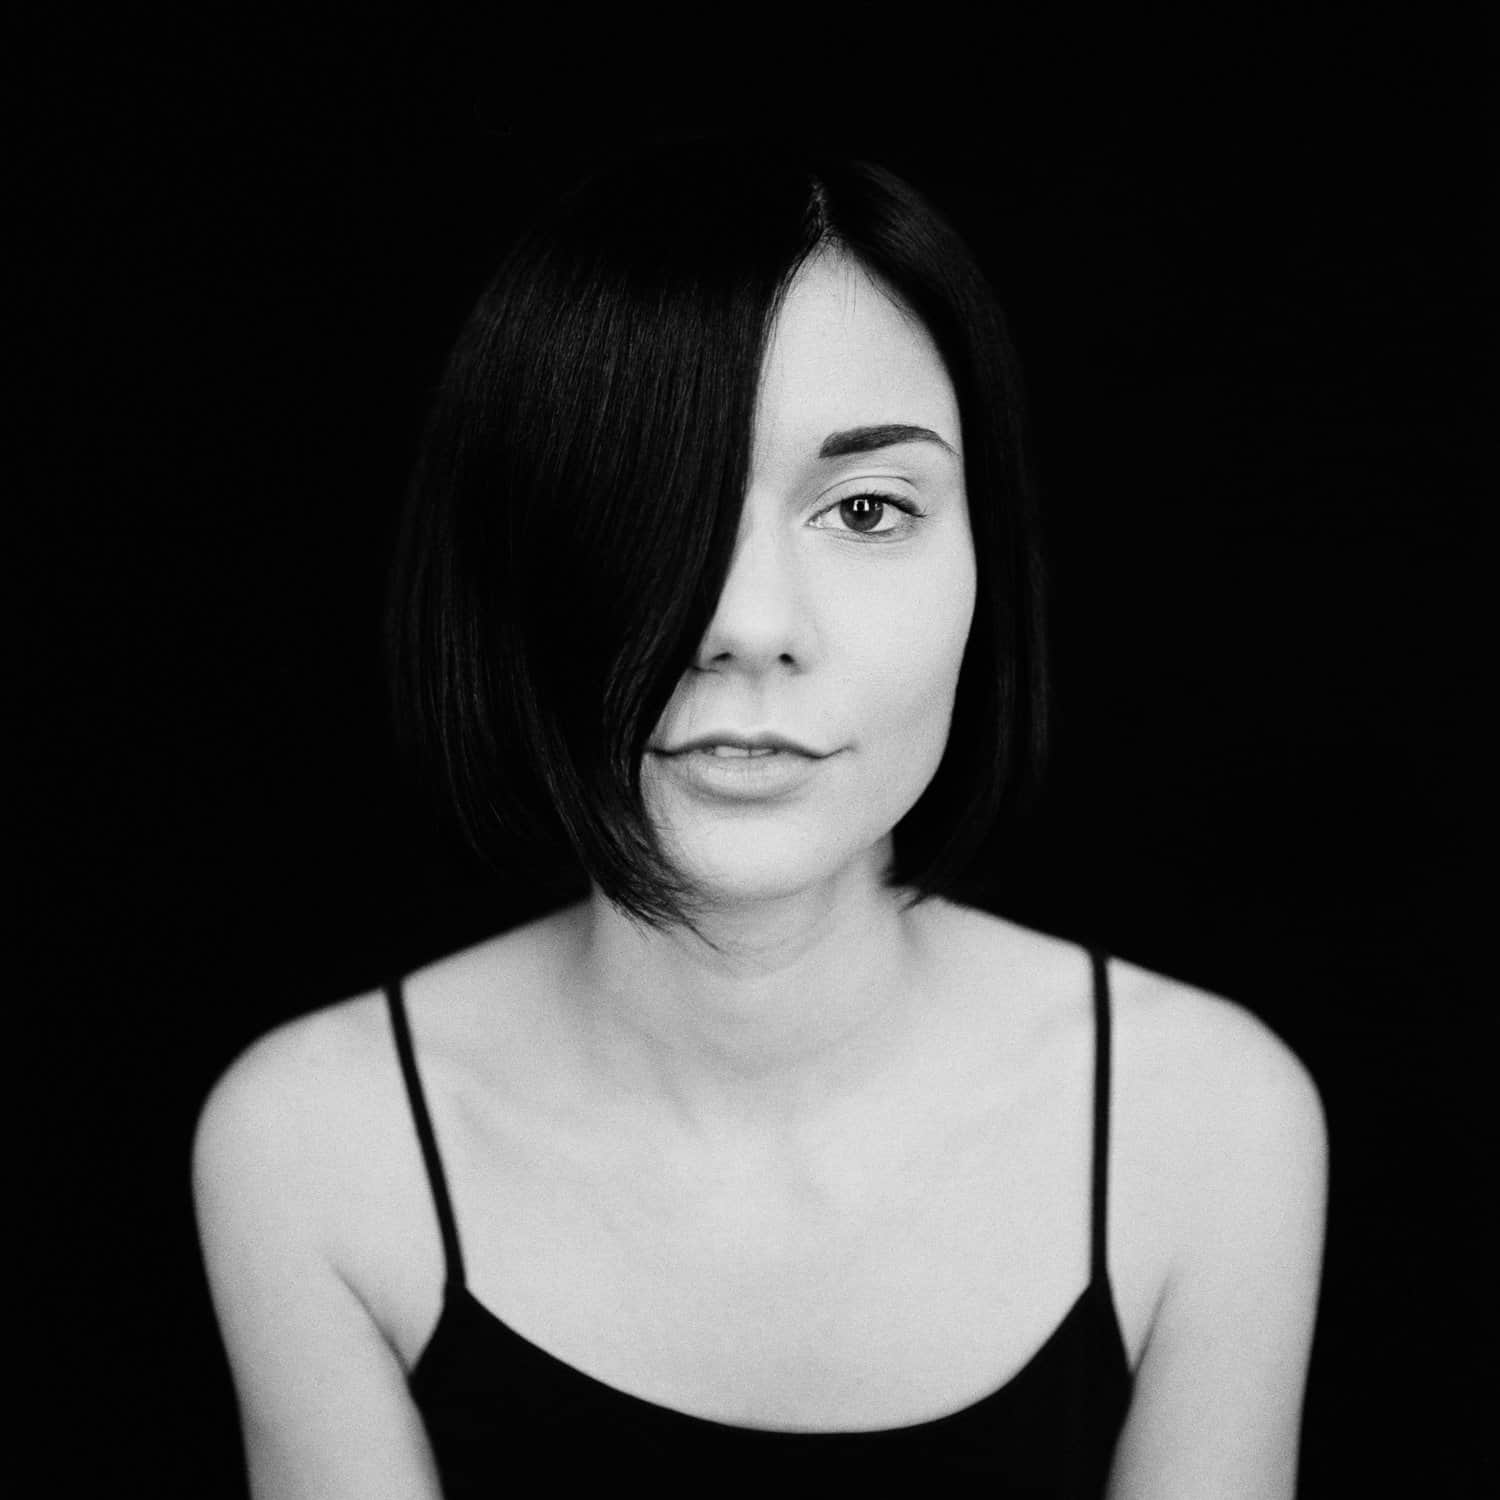 Rolleicord fine art portrait series by daniel krueger on shoot it with film